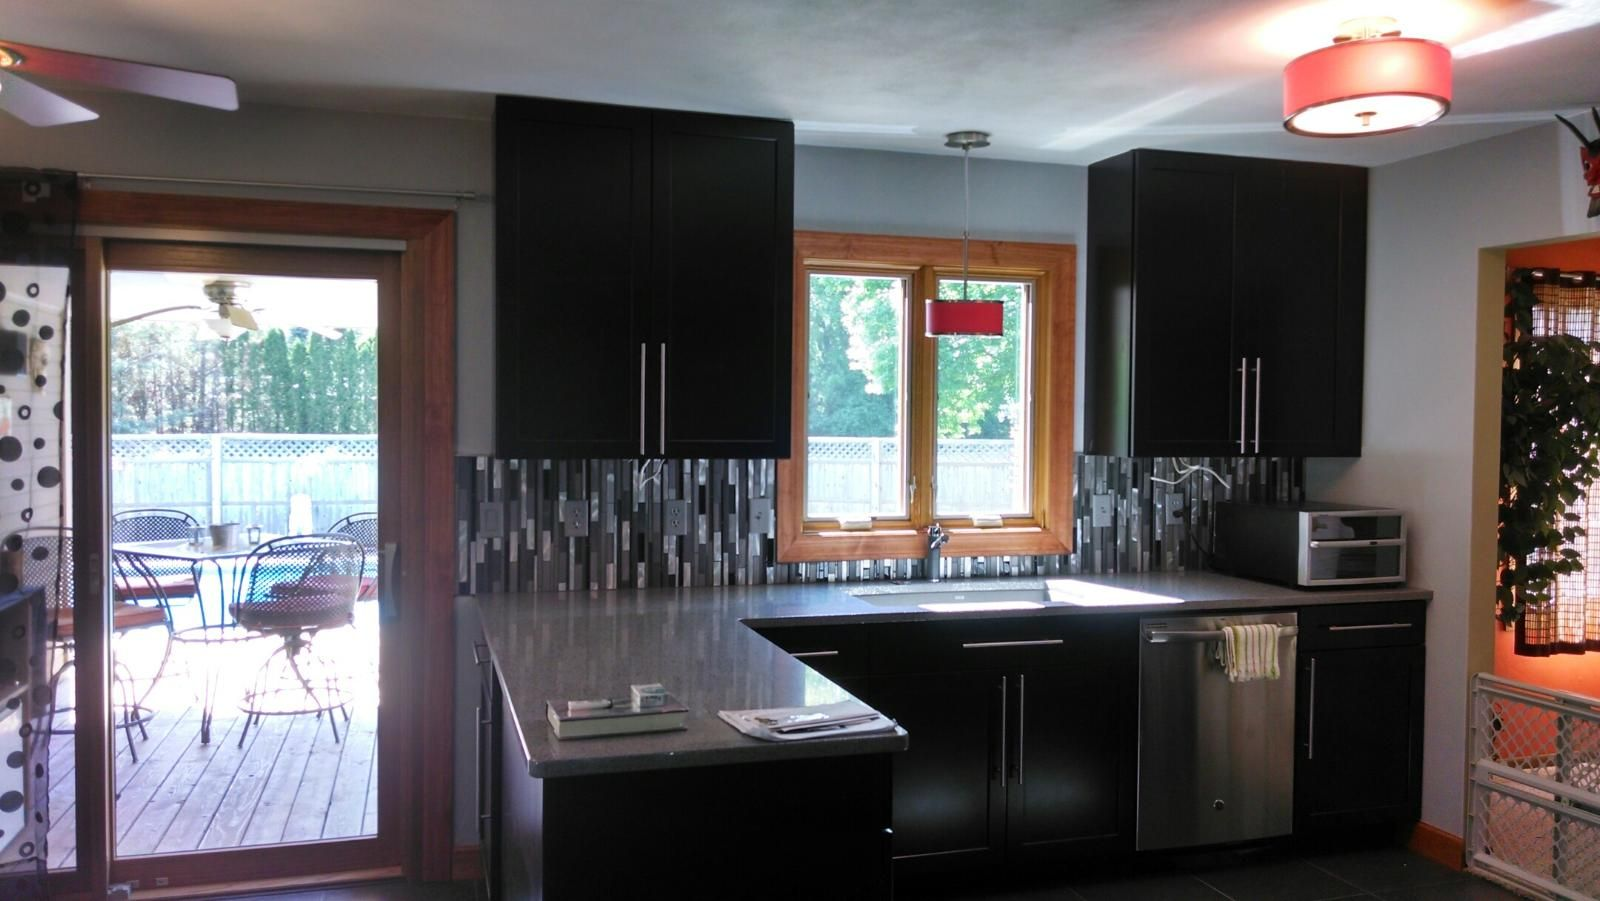 Waypoint Cabinetry, Glazzio Glass & Stainless Back Splash, Silestone Countertops, Blanco Sink & Faucet